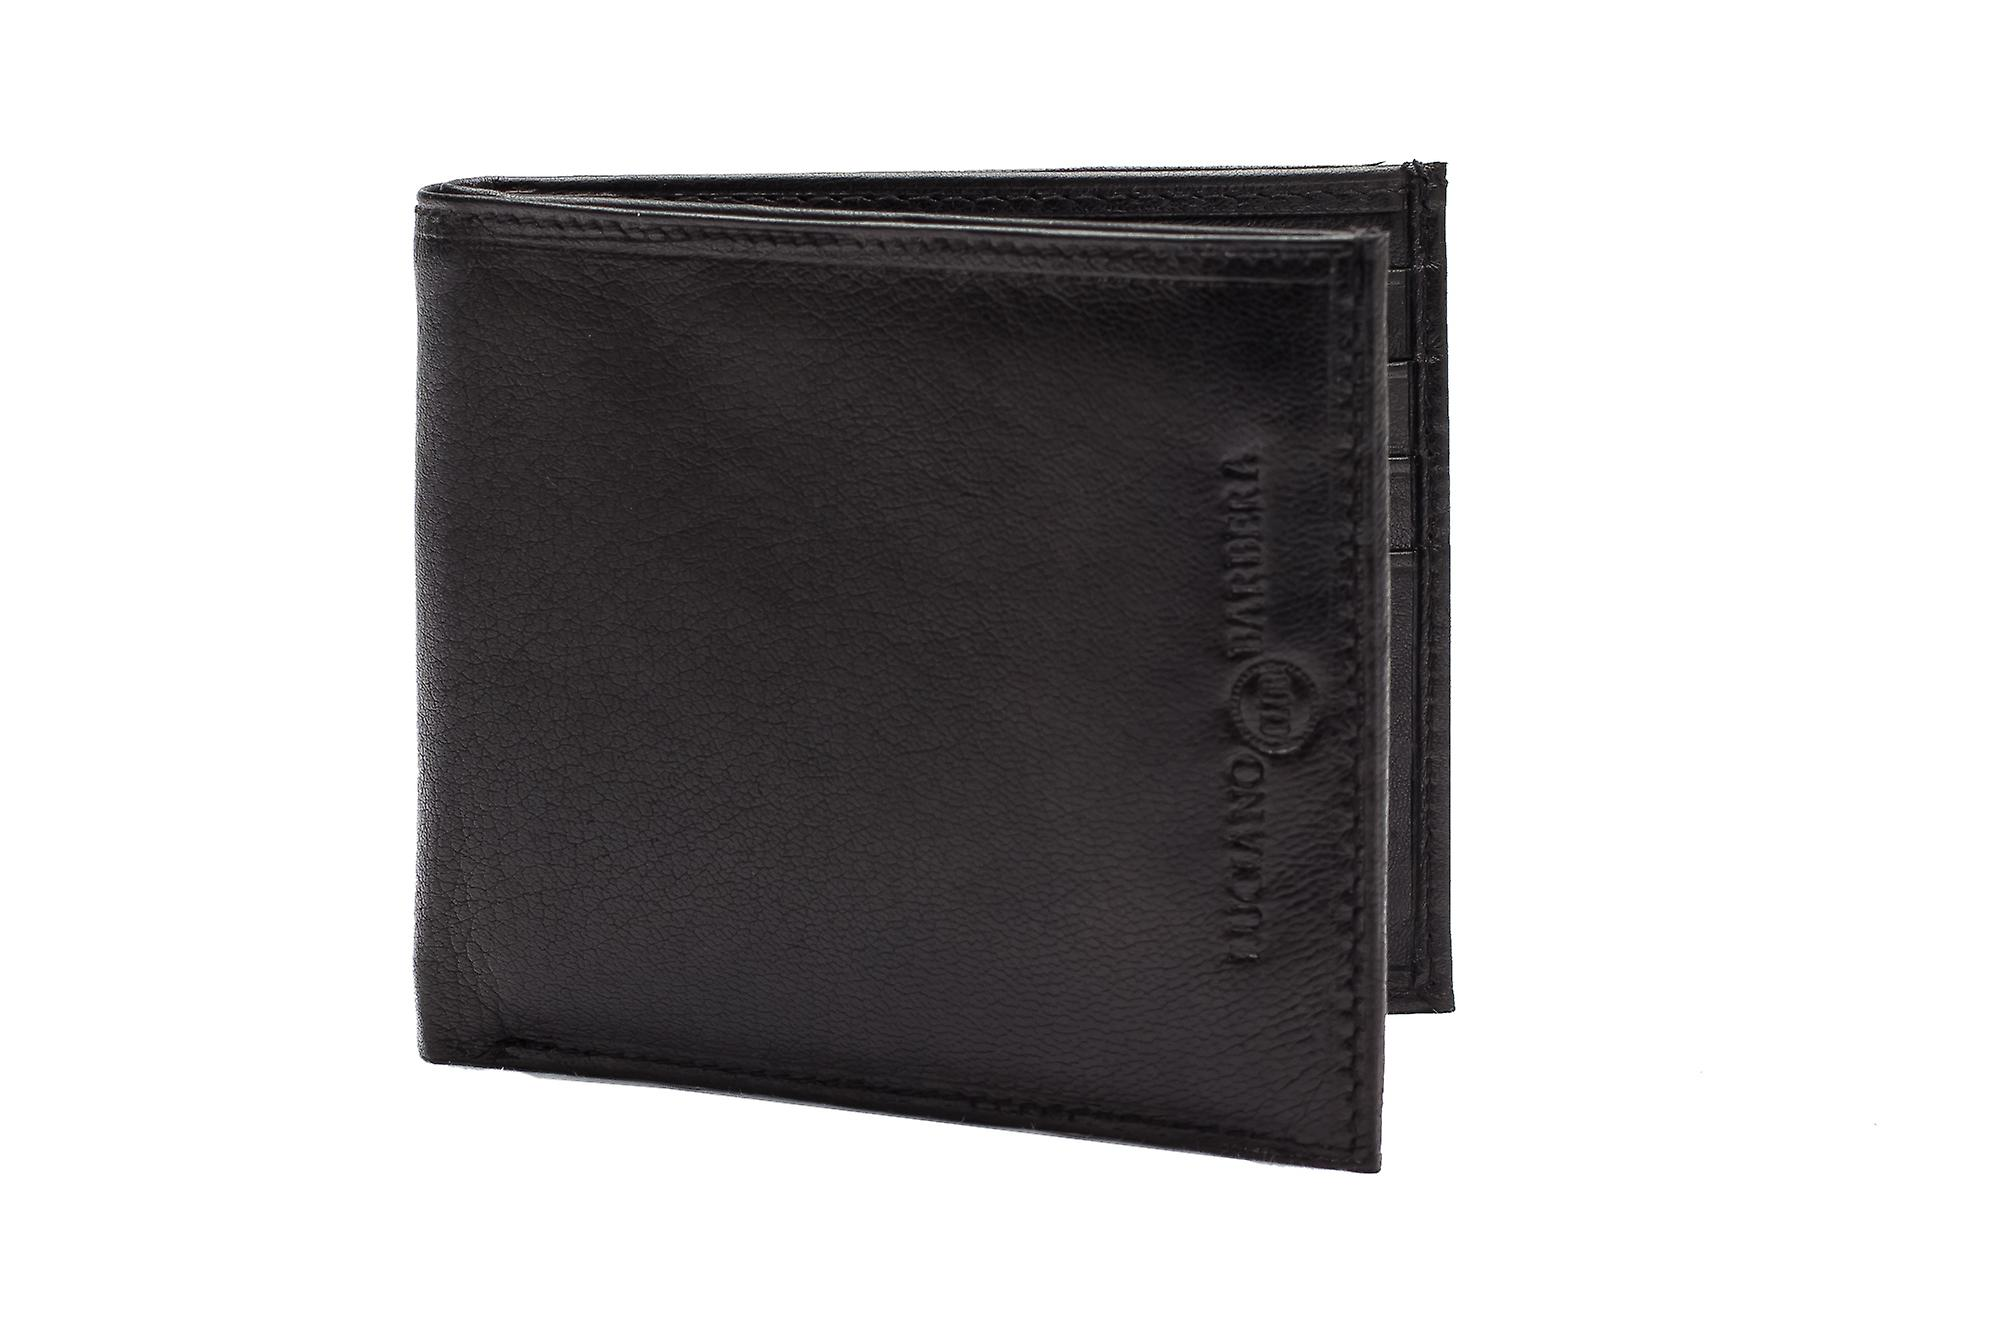 Luciano Barbera Club Leather Wallet Black